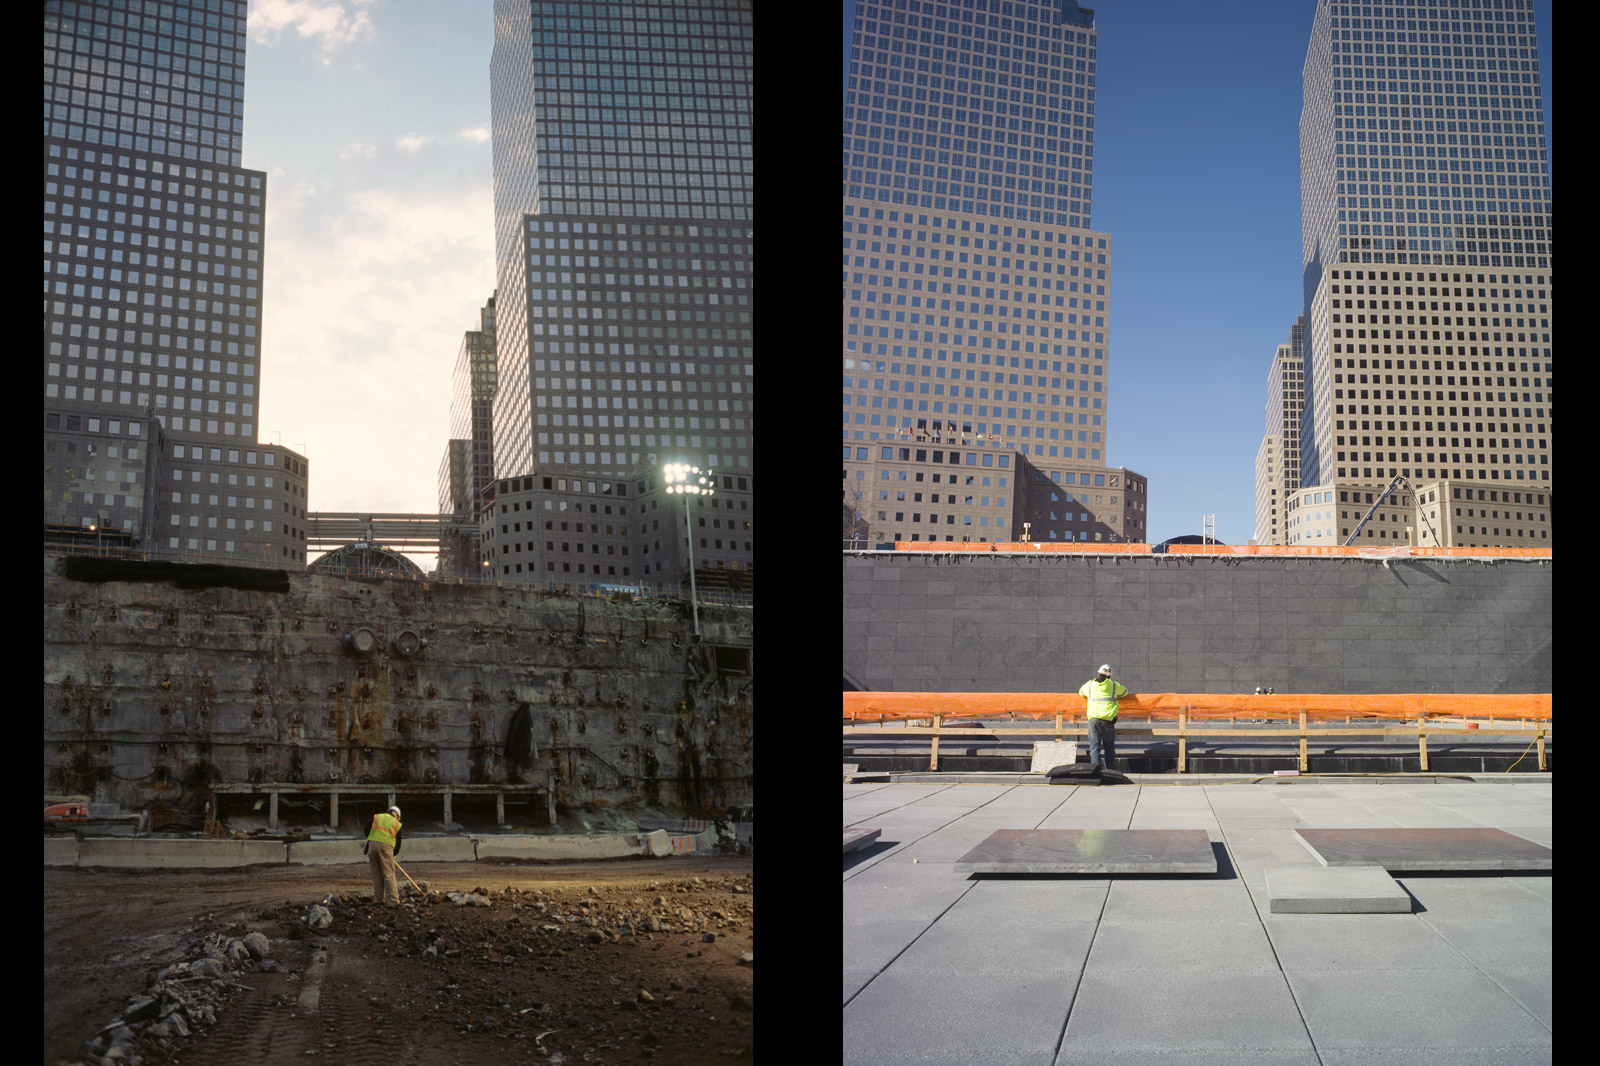 A lone worker rakes through debris near the west slurry wall in May 2002 (left). More than eight years later, a worker inside the north reflecting pool looks over the edge into the second recessed pool